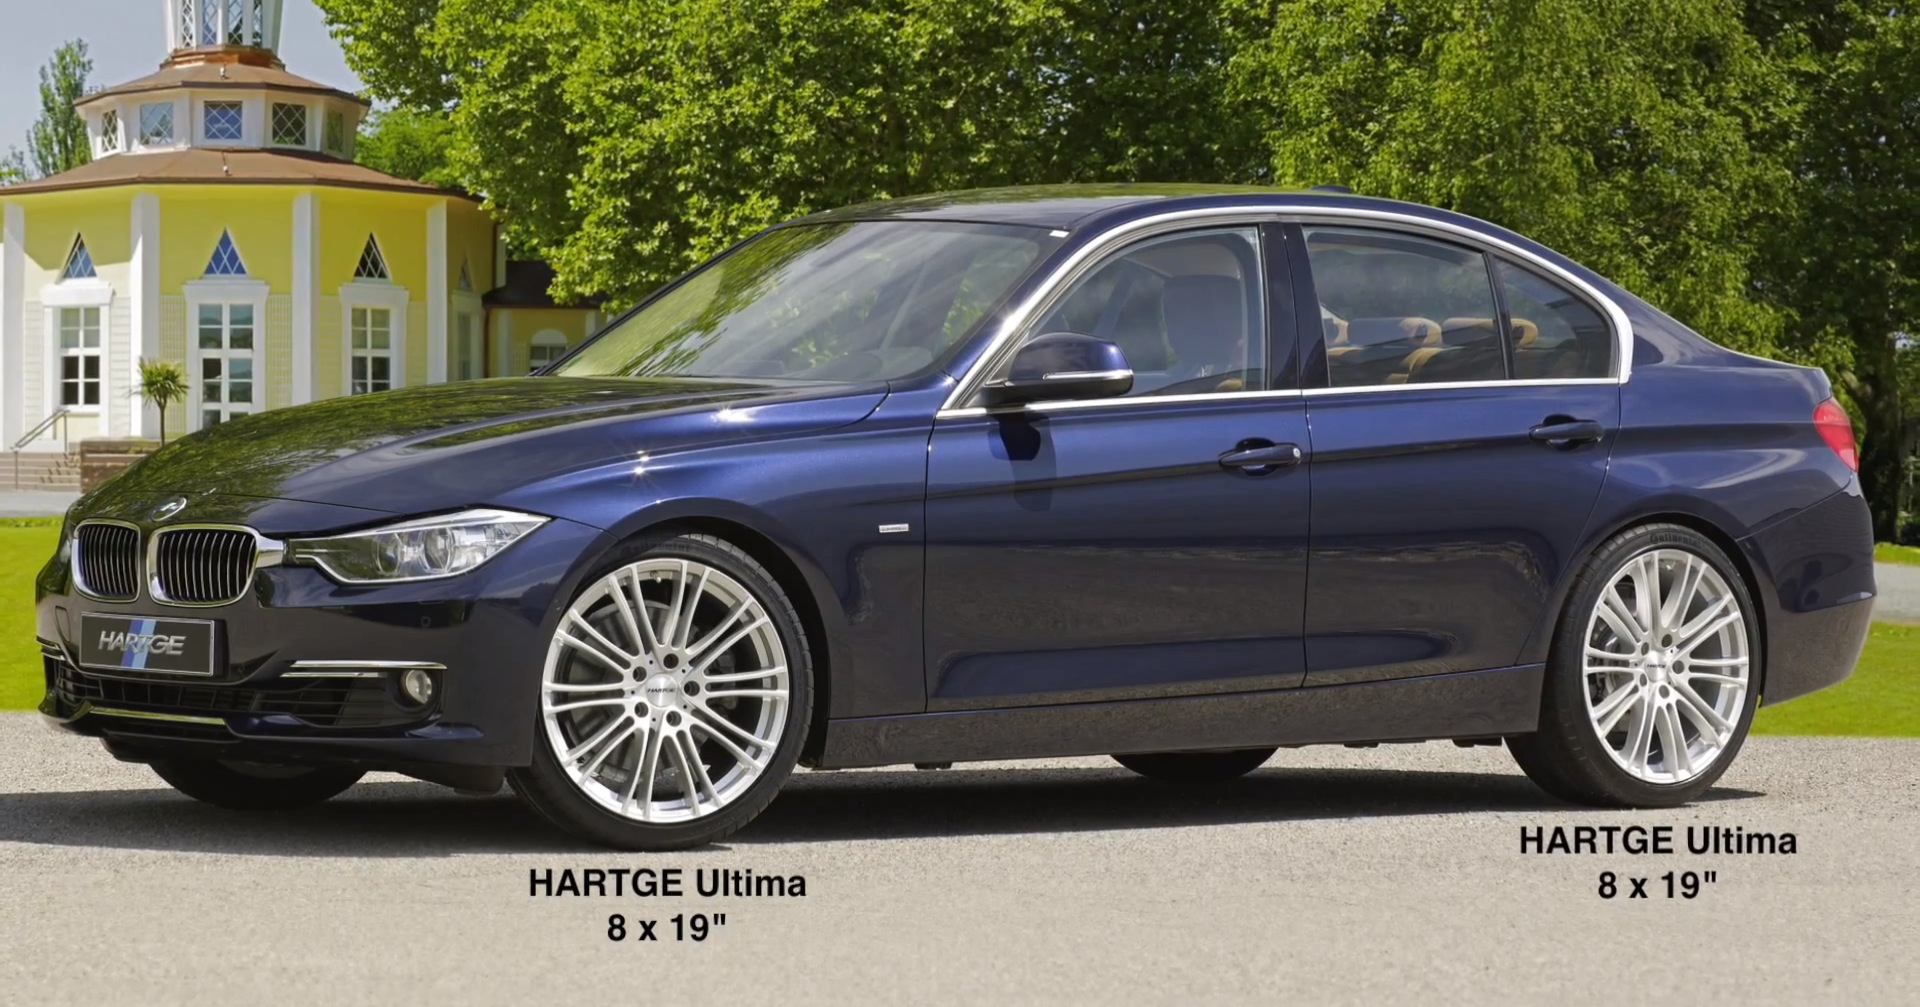 hartge s 362 hp bmw 335d xdrive is dangerously fast autoevolution. Black Bedroom Furniture Sets. Home Design Ideas